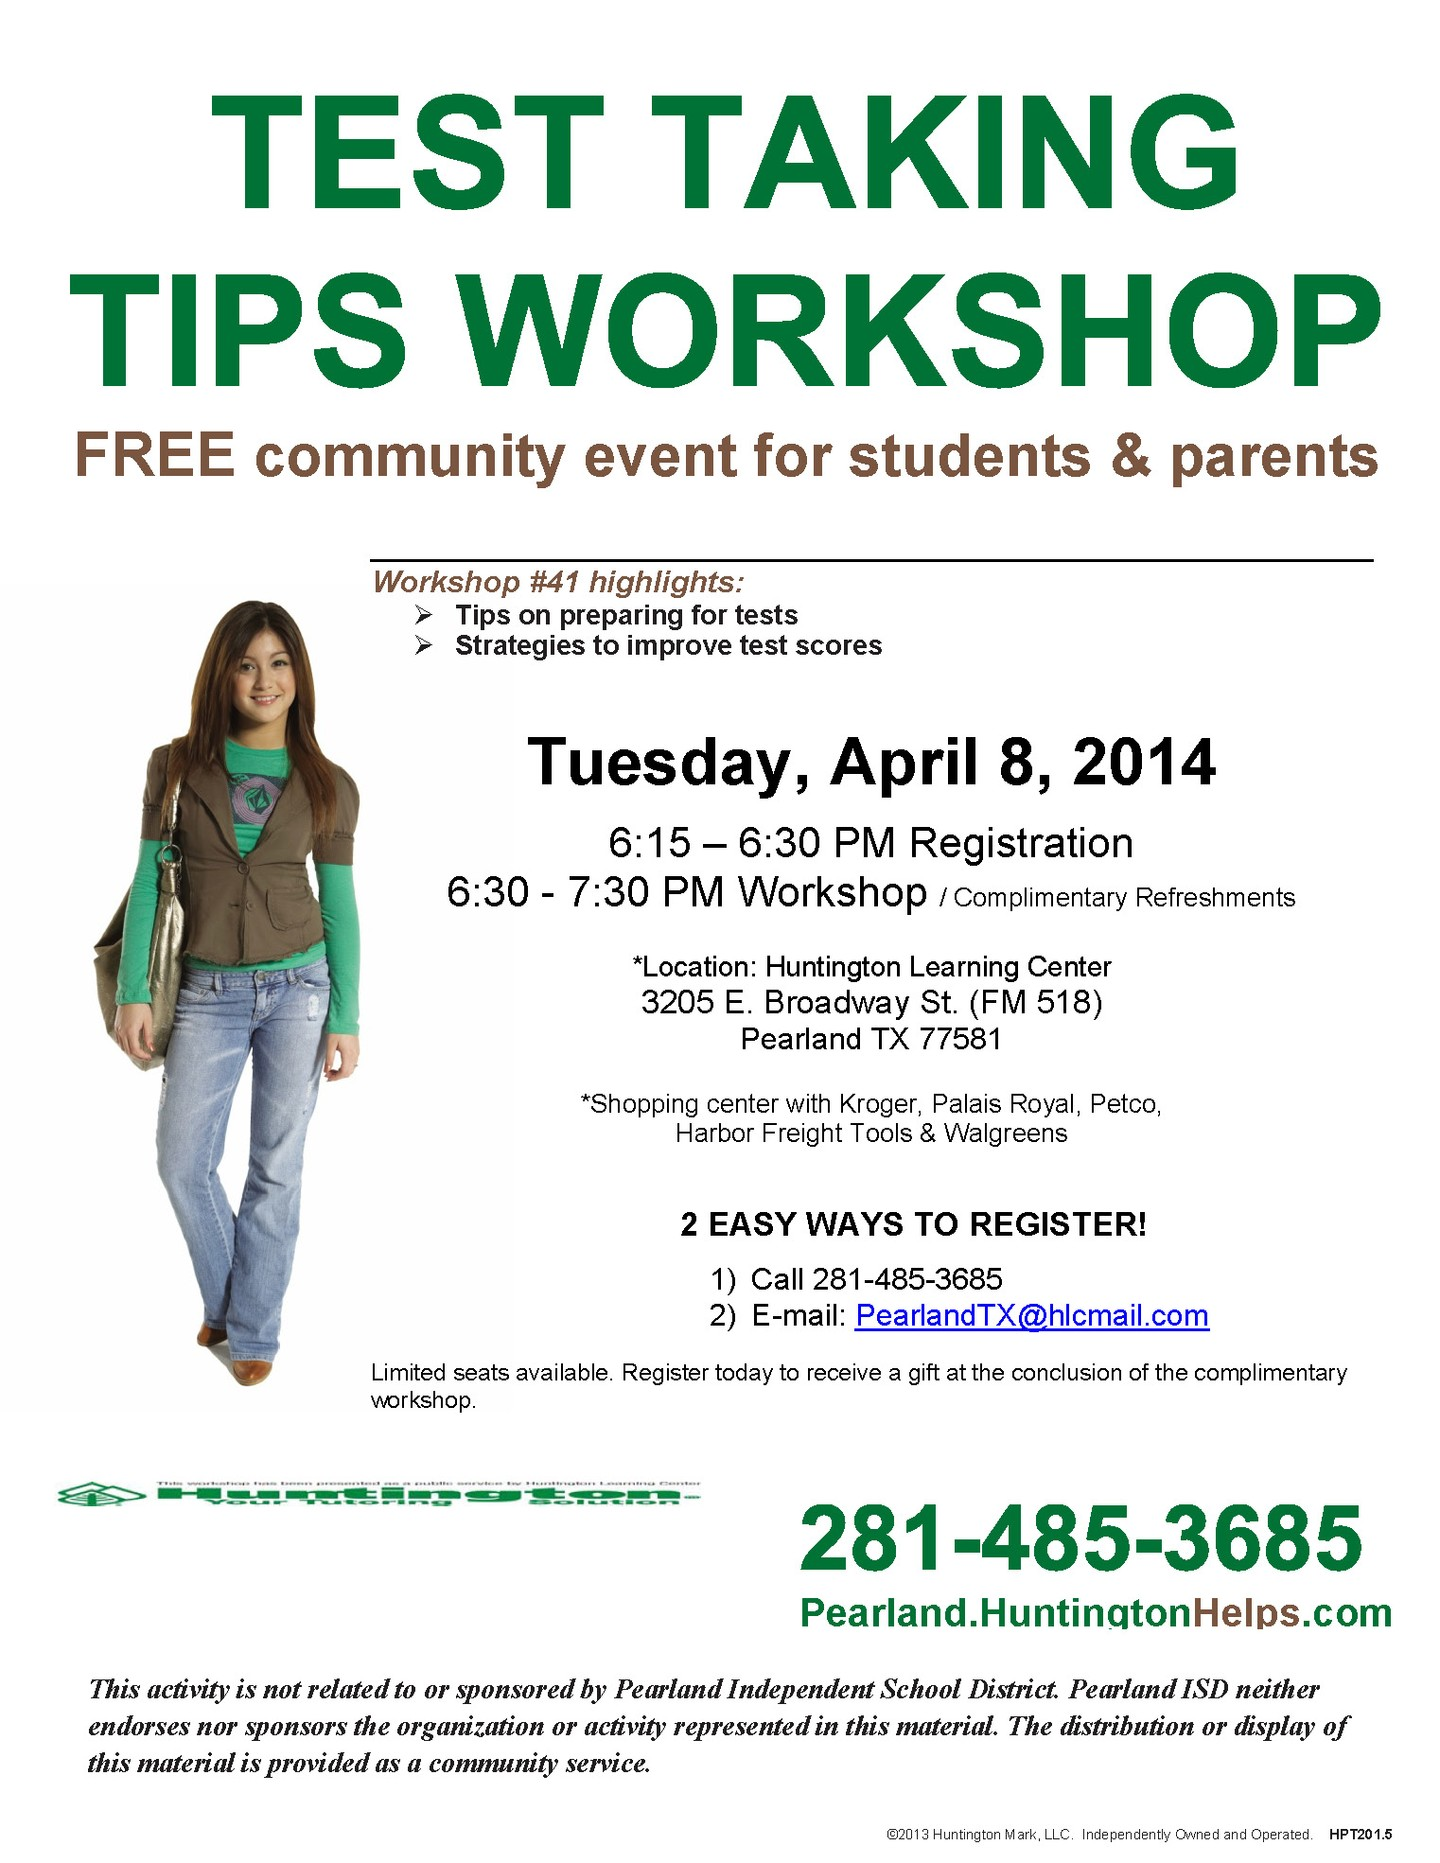 FREE Test Taking Tips Workshop for PISD Students and ...